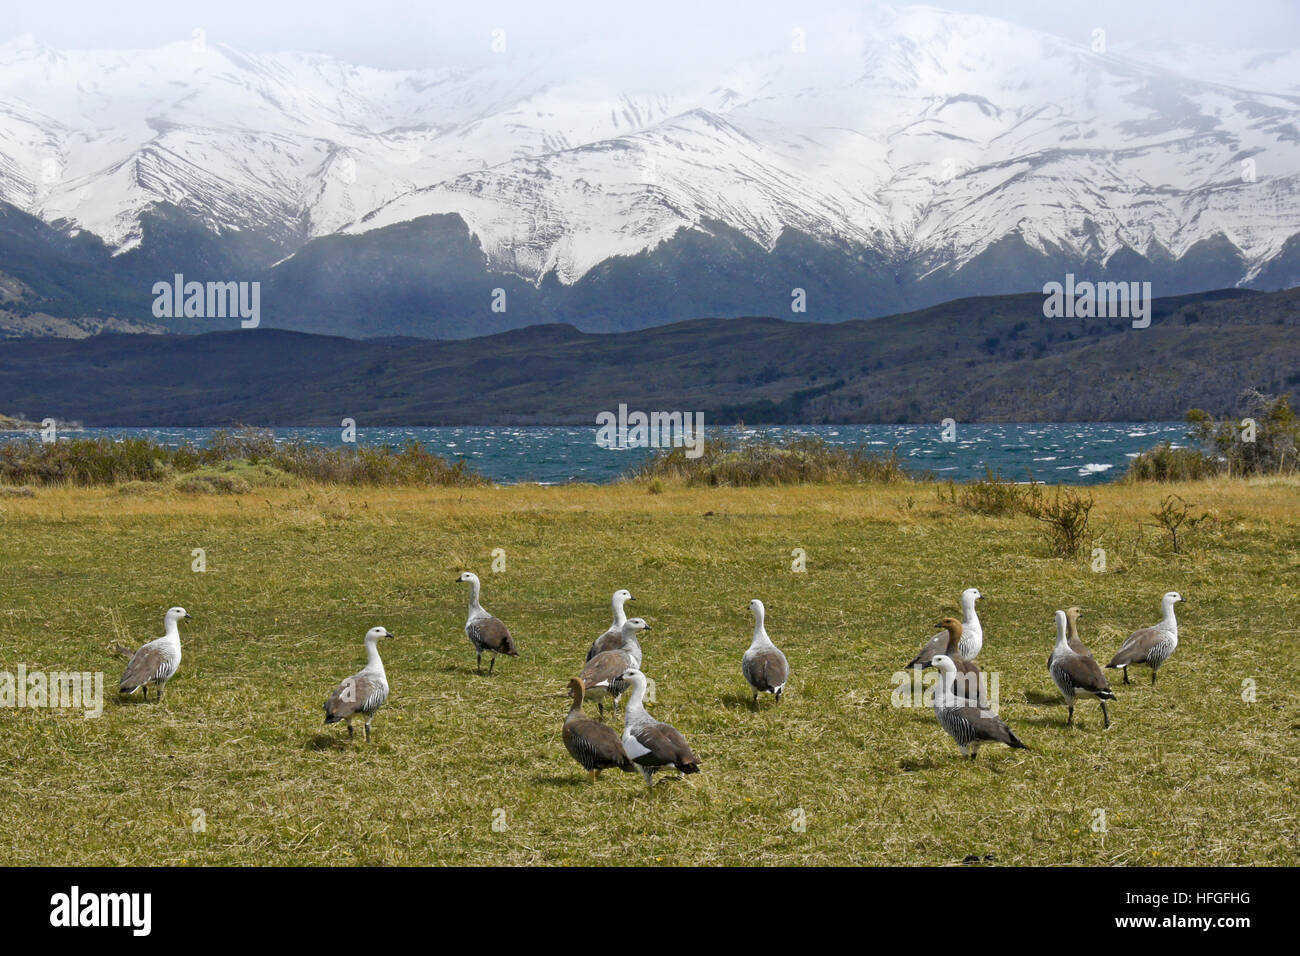 Magellan (upland) geese at Laguna Azul, Torres del Paine NP, Patagonia, Chile - Stock Image